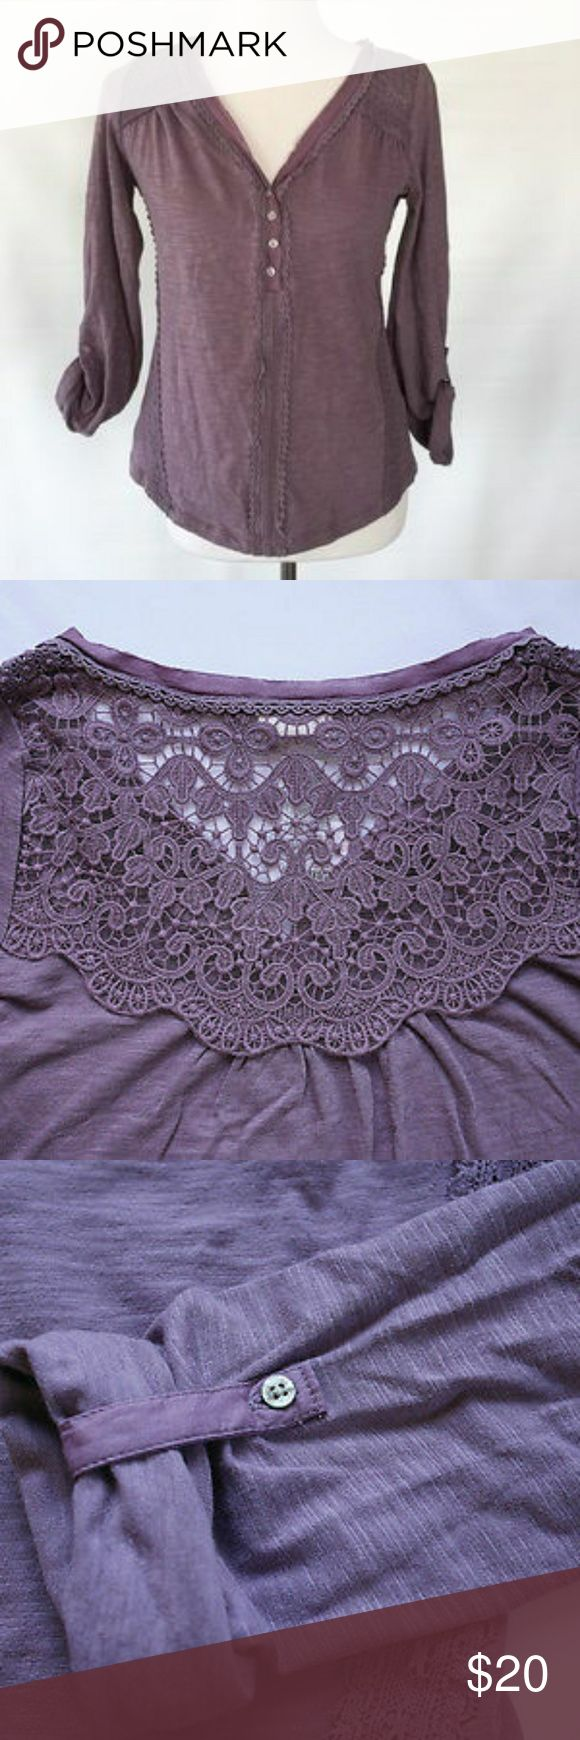 🦑Anthropologie🦑 Quinn Henley By Meadow Rue Anthropologie Quinn Henley By Meadow Rue. Same style number As seen on Ariel Winter on Modern Family! Light weight cotton.Sheer lace detailing. Button front. Machine wash. This is not nwt it has been loved. It has no stains. No holes. No snags. The jersey type material is made comfy and broken in. Which makes this top a favorite and a staple for every girl! SMOKE FREE.  Style No. 4112346827725 Anthropologie Tops